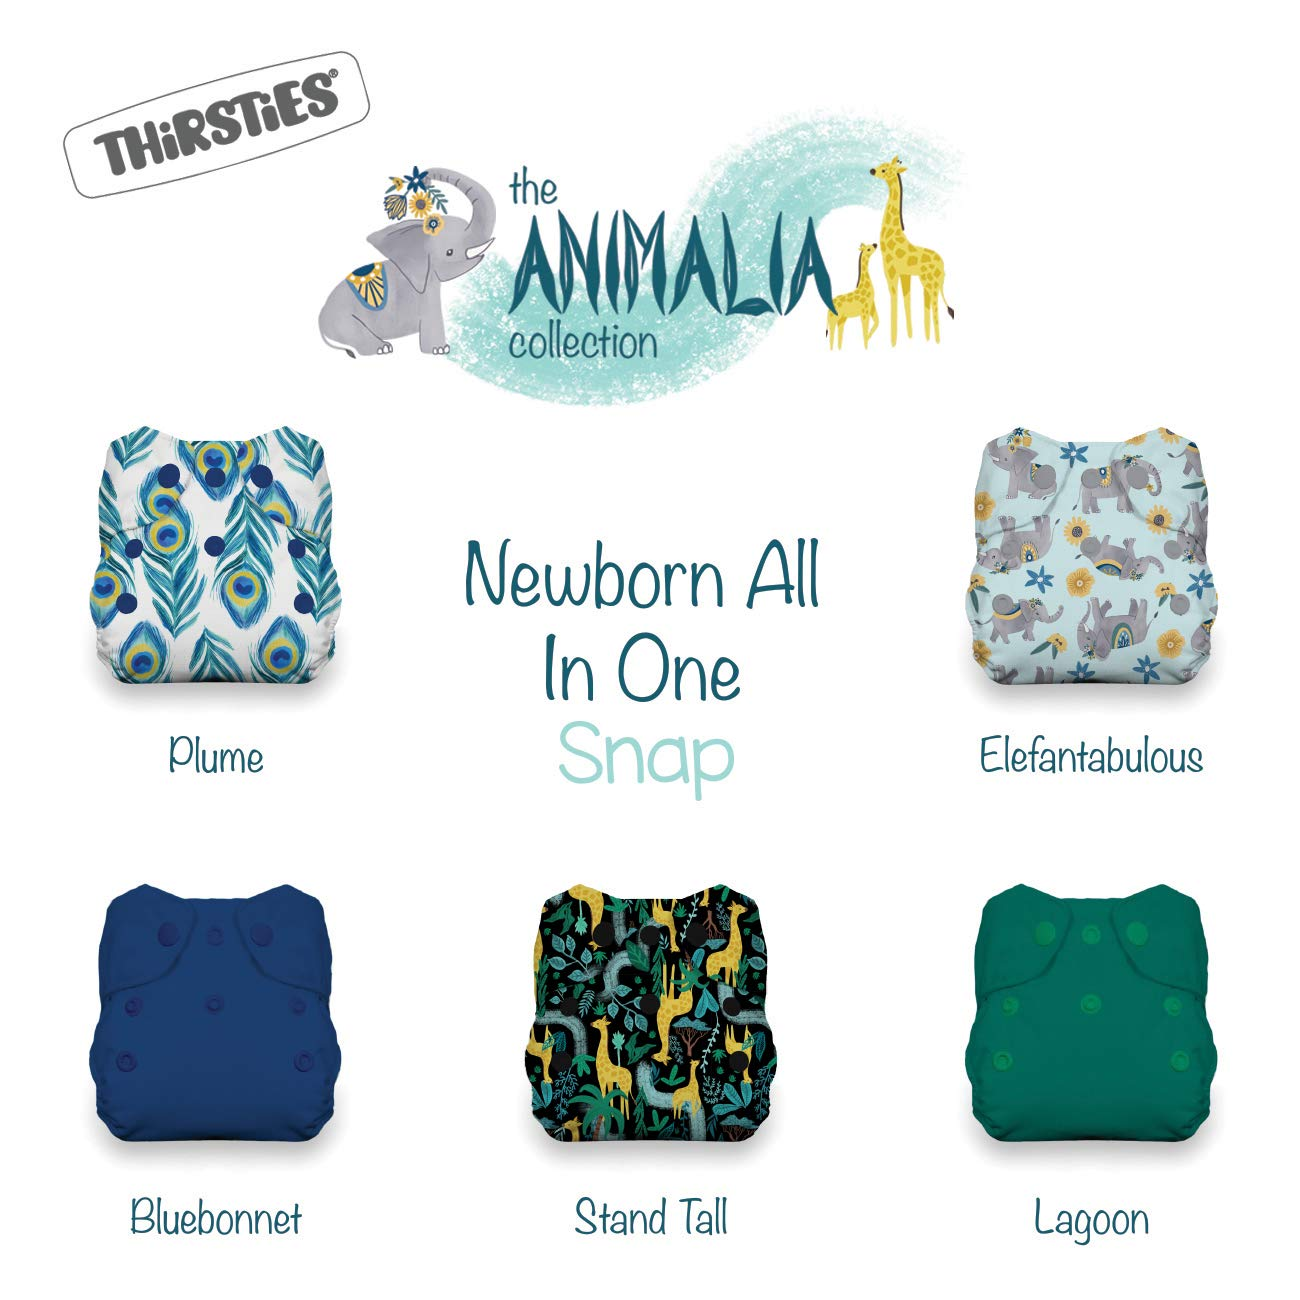 Thirsties Animalia Cloth Diaper Collection Package, Snap Newborn All in One Cloth Diaper, Animalia